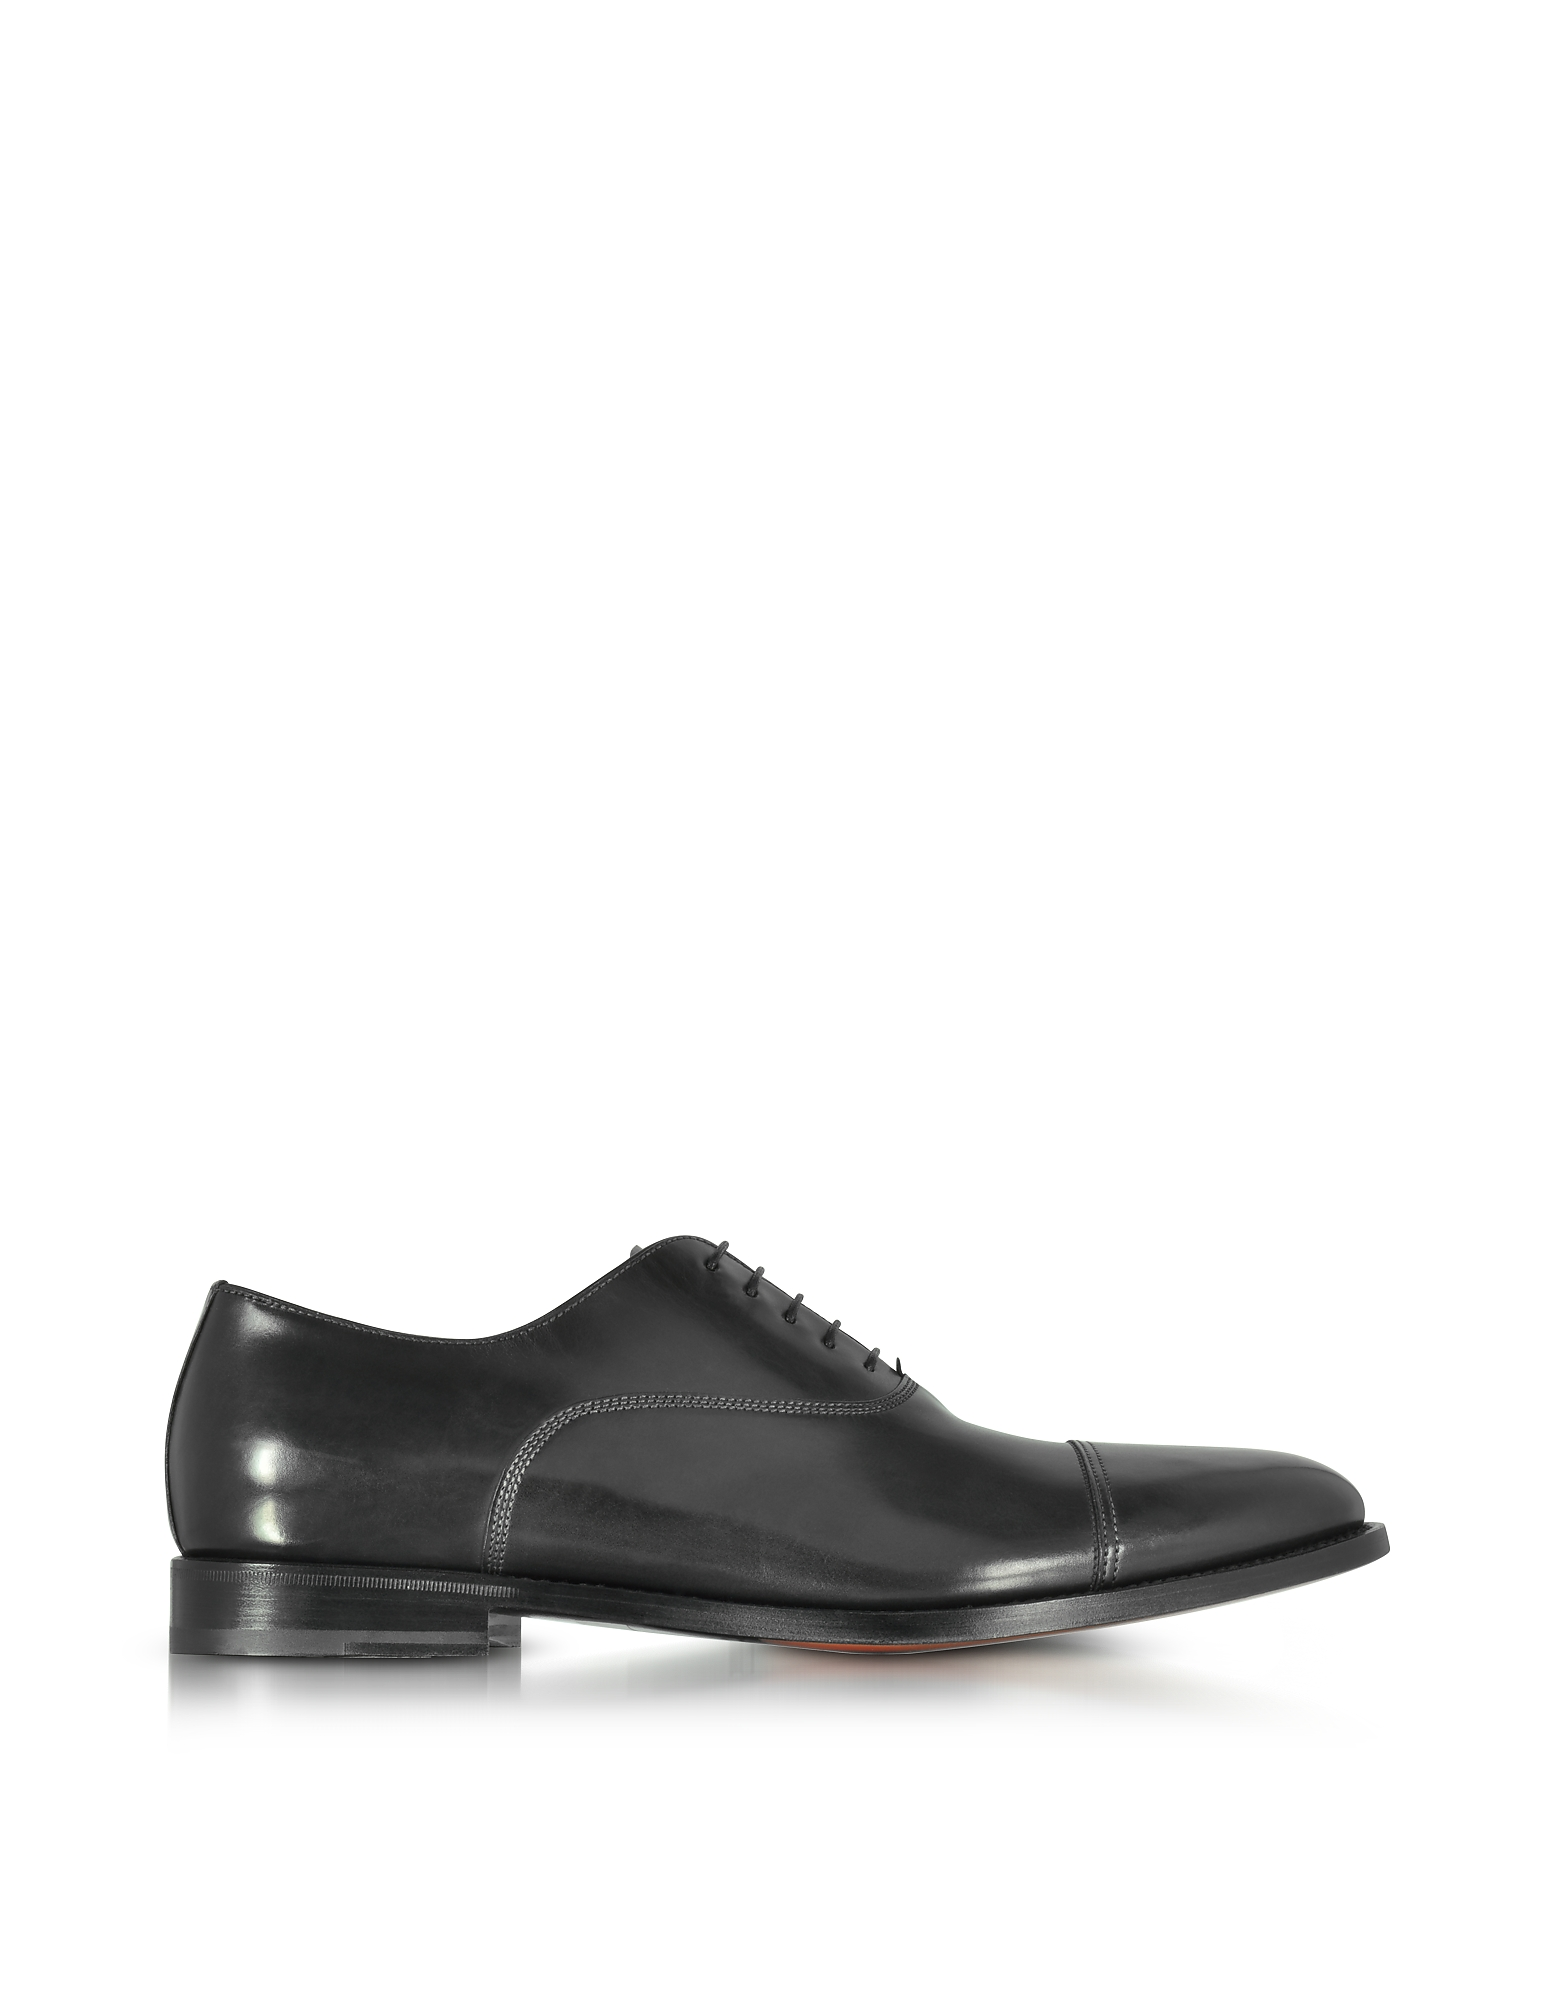 Santoni Wilson Black Leather Oxford Shoes